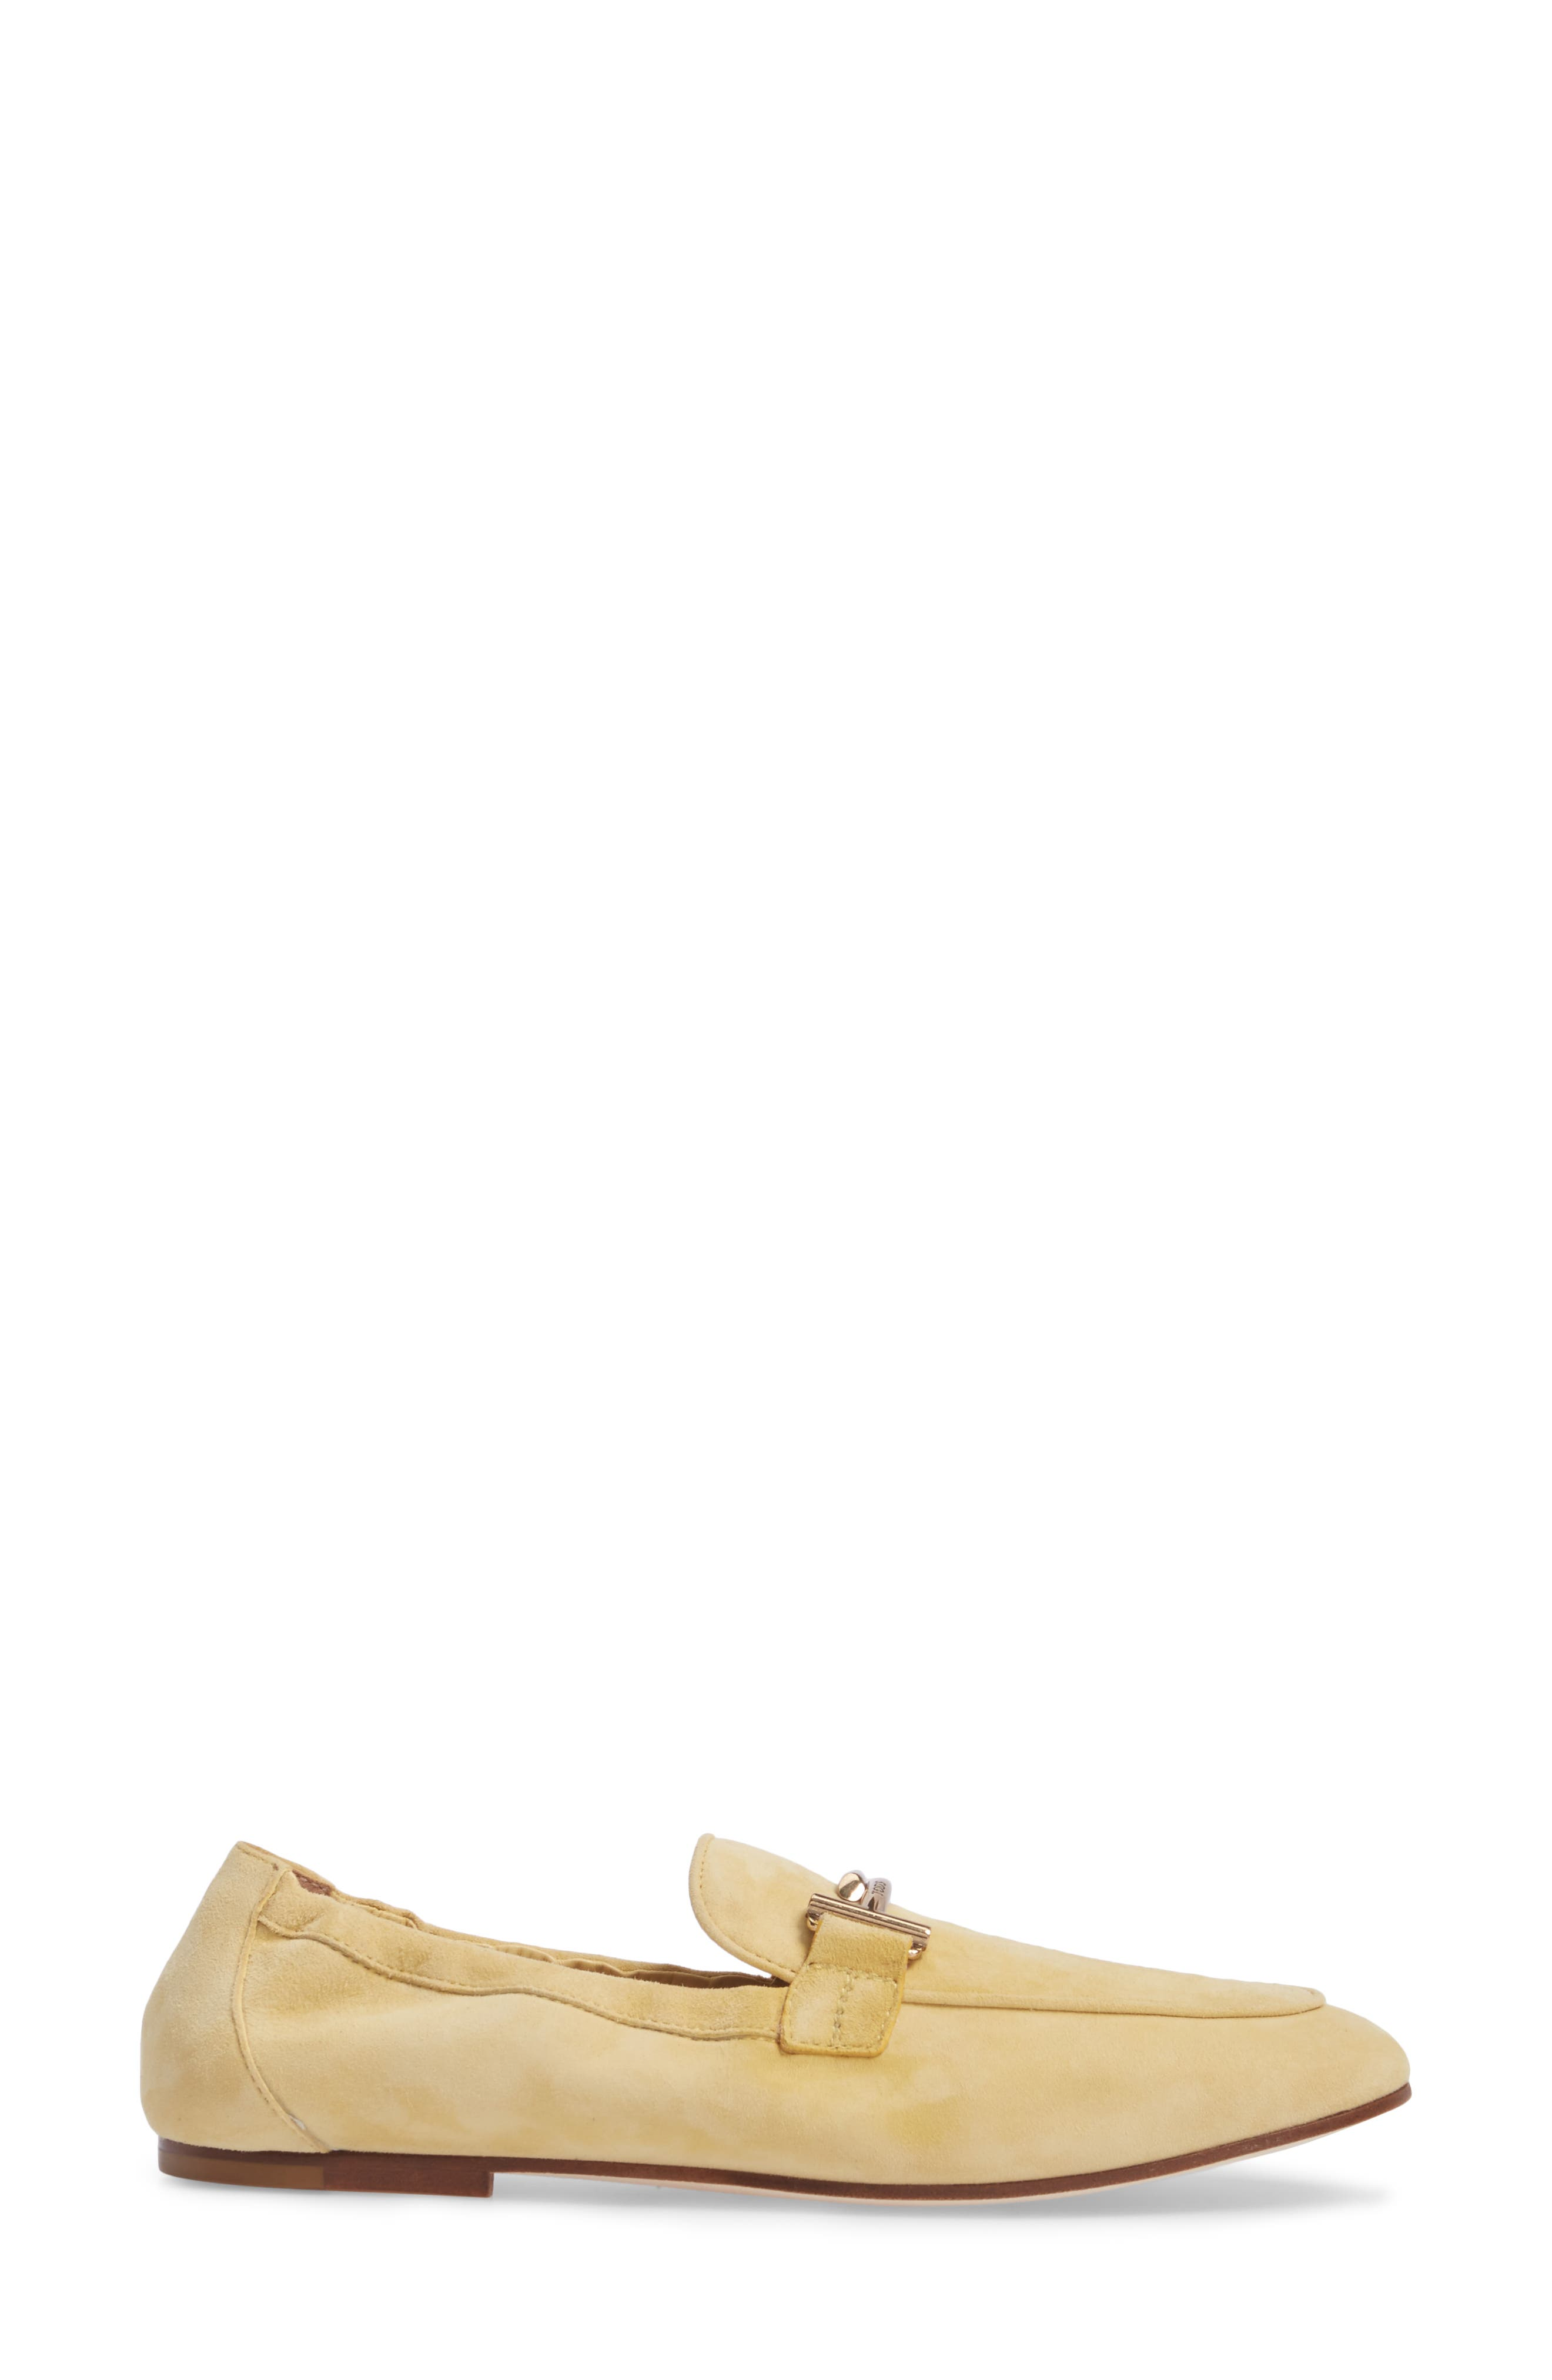 Double T Scrunch Loafer,                             Alternate thumbnail 12, color,